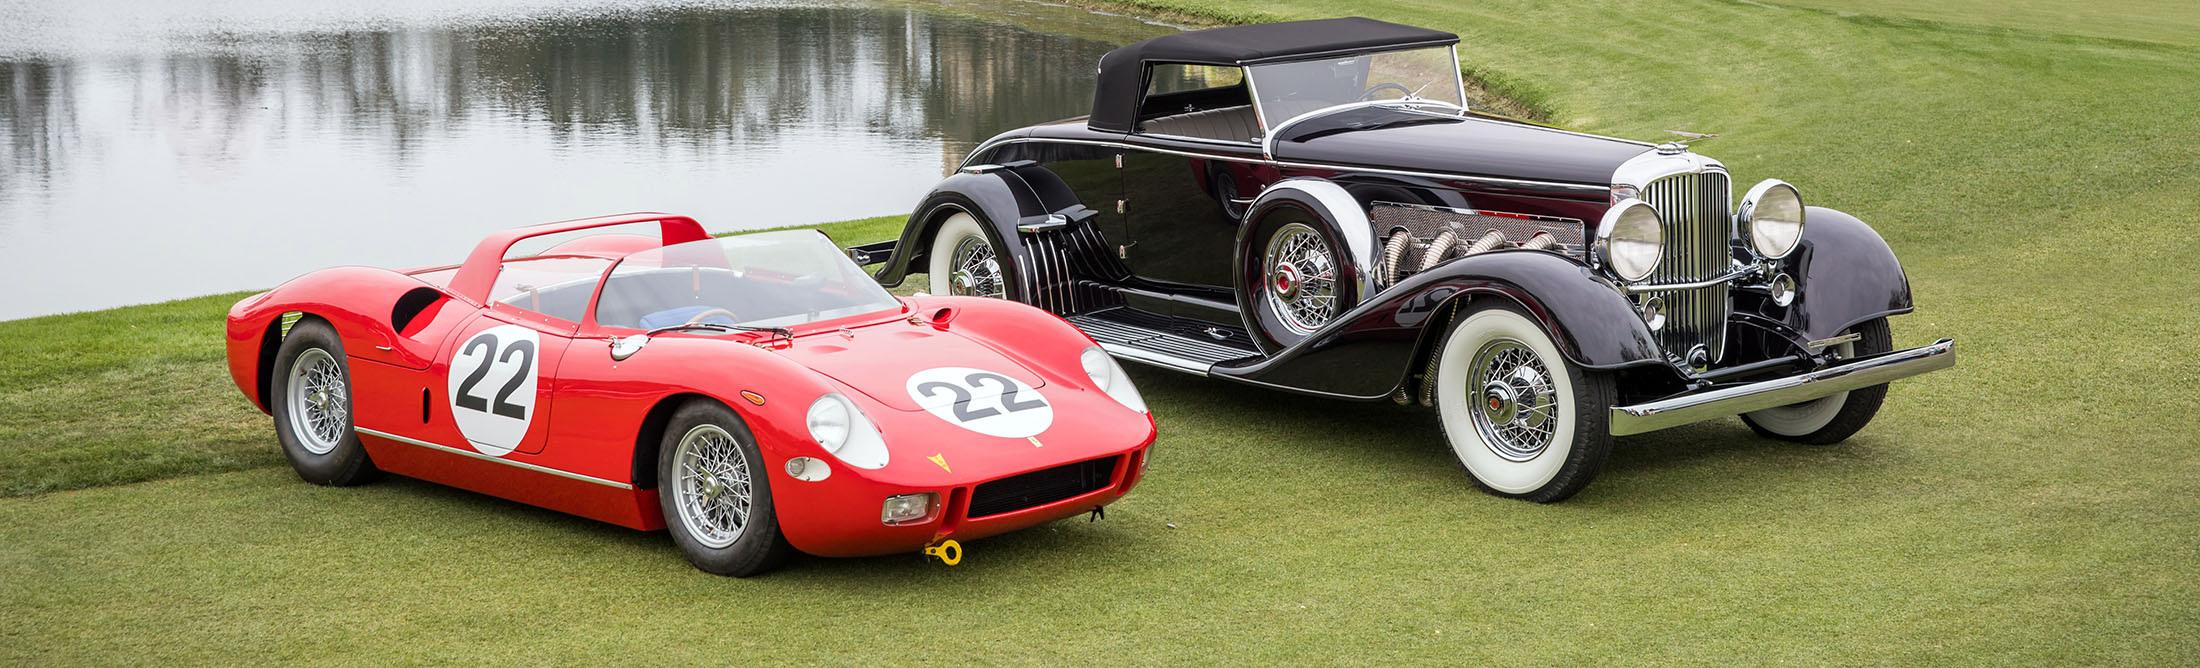 At Amelia Island The Best Cars Were Not The Most Expensive Ones - Amelia island car show